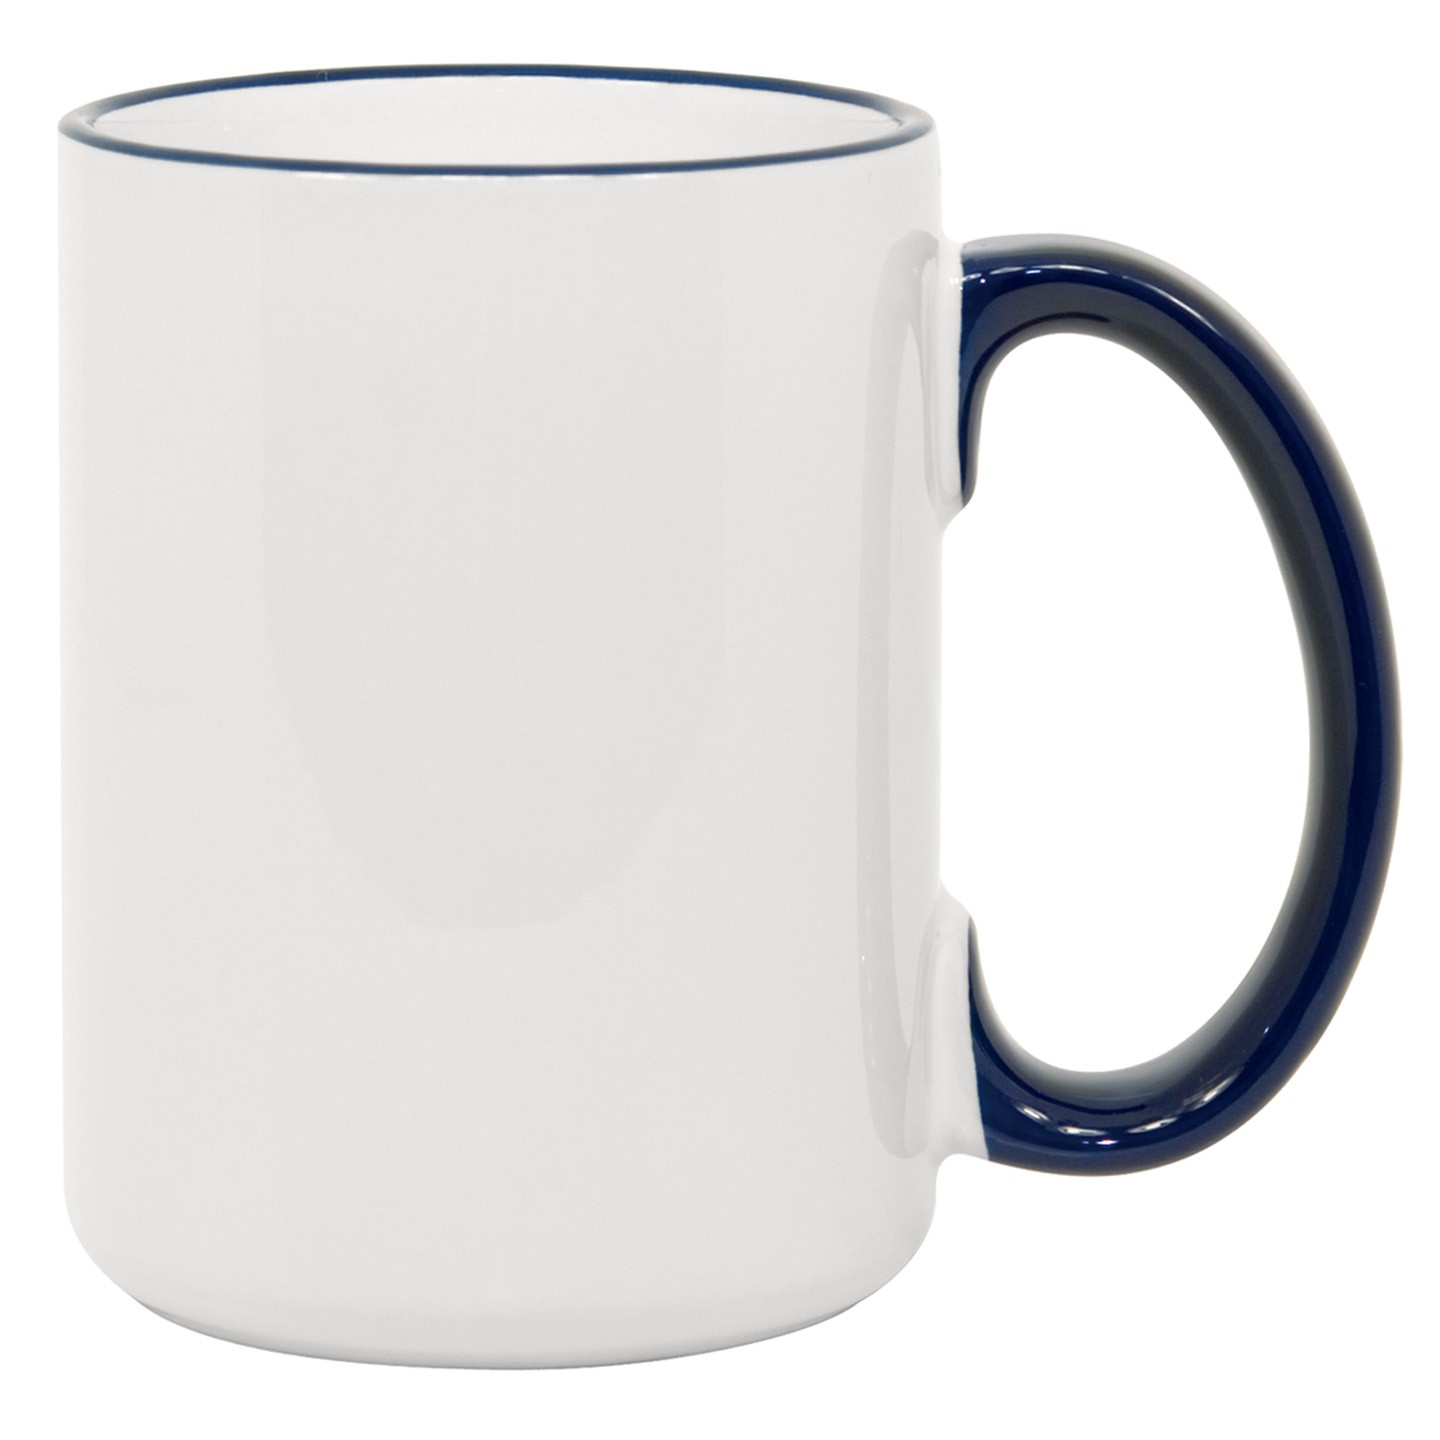 15oz blue Photo Mug